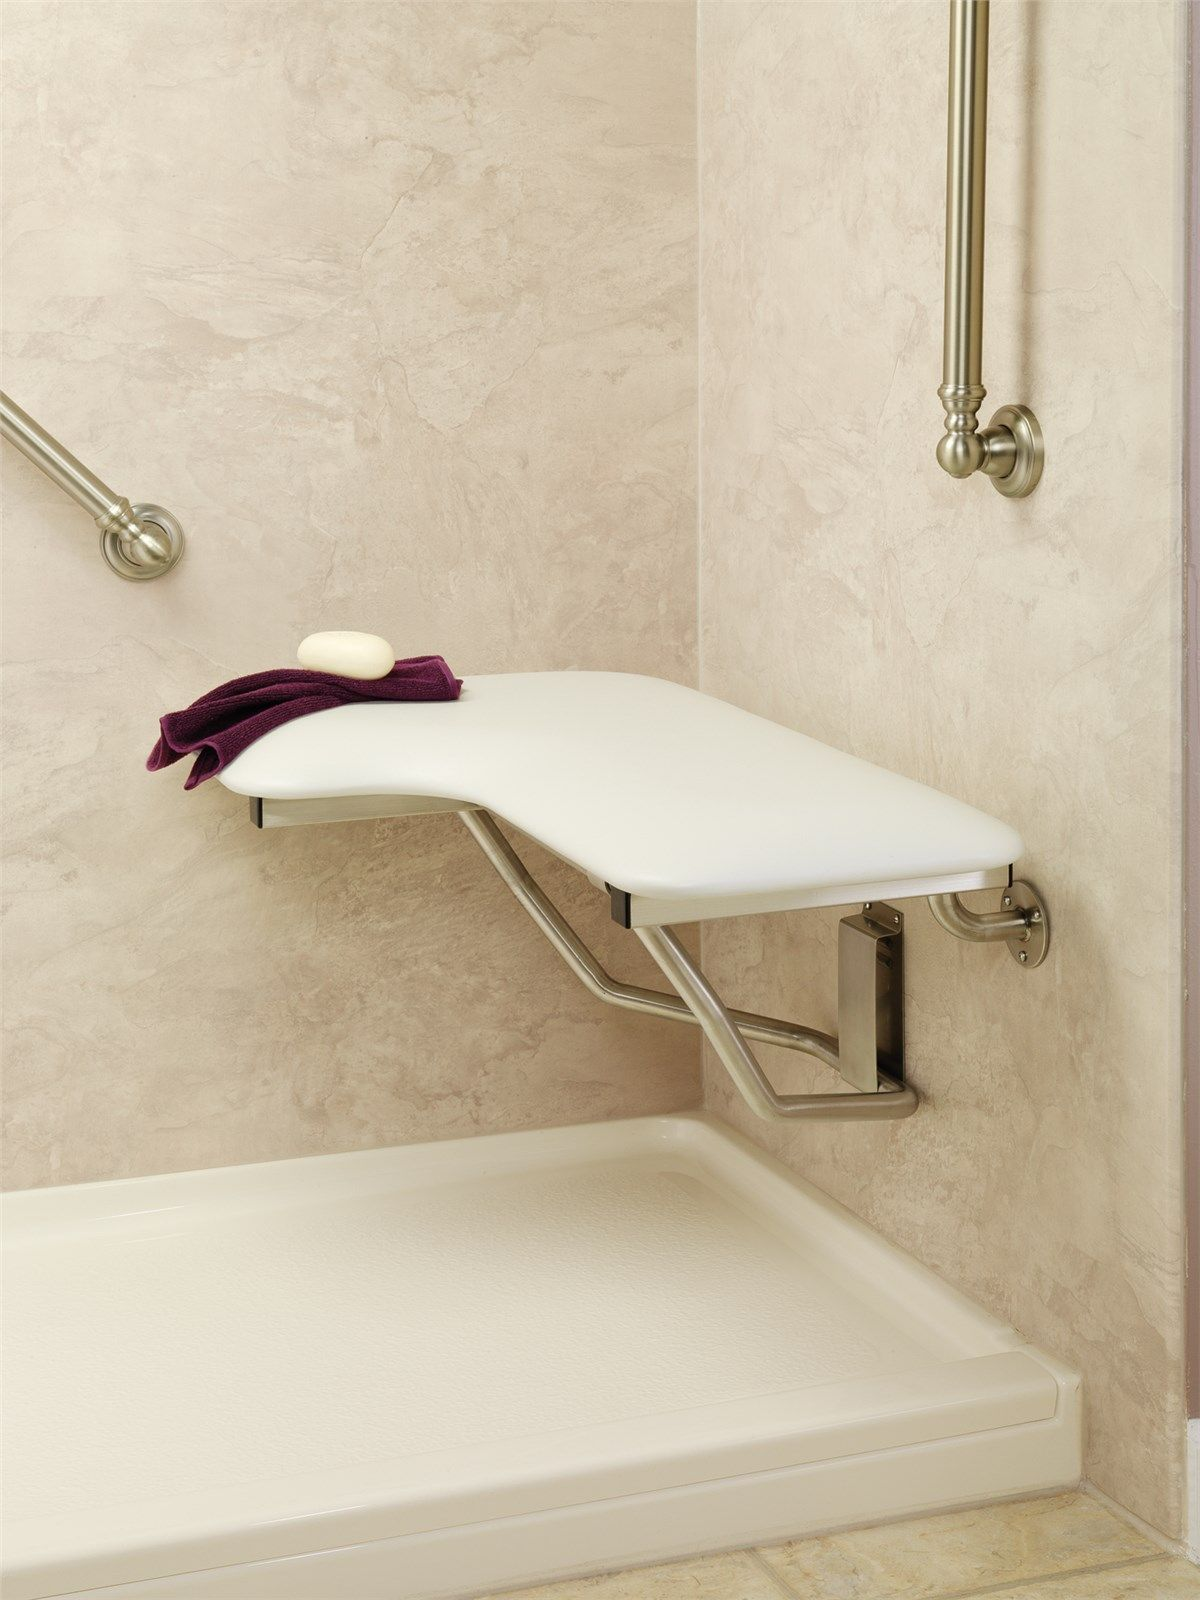 Seachrome Shower Seat | Roll-in showers | Pinterest | Shower seat ...